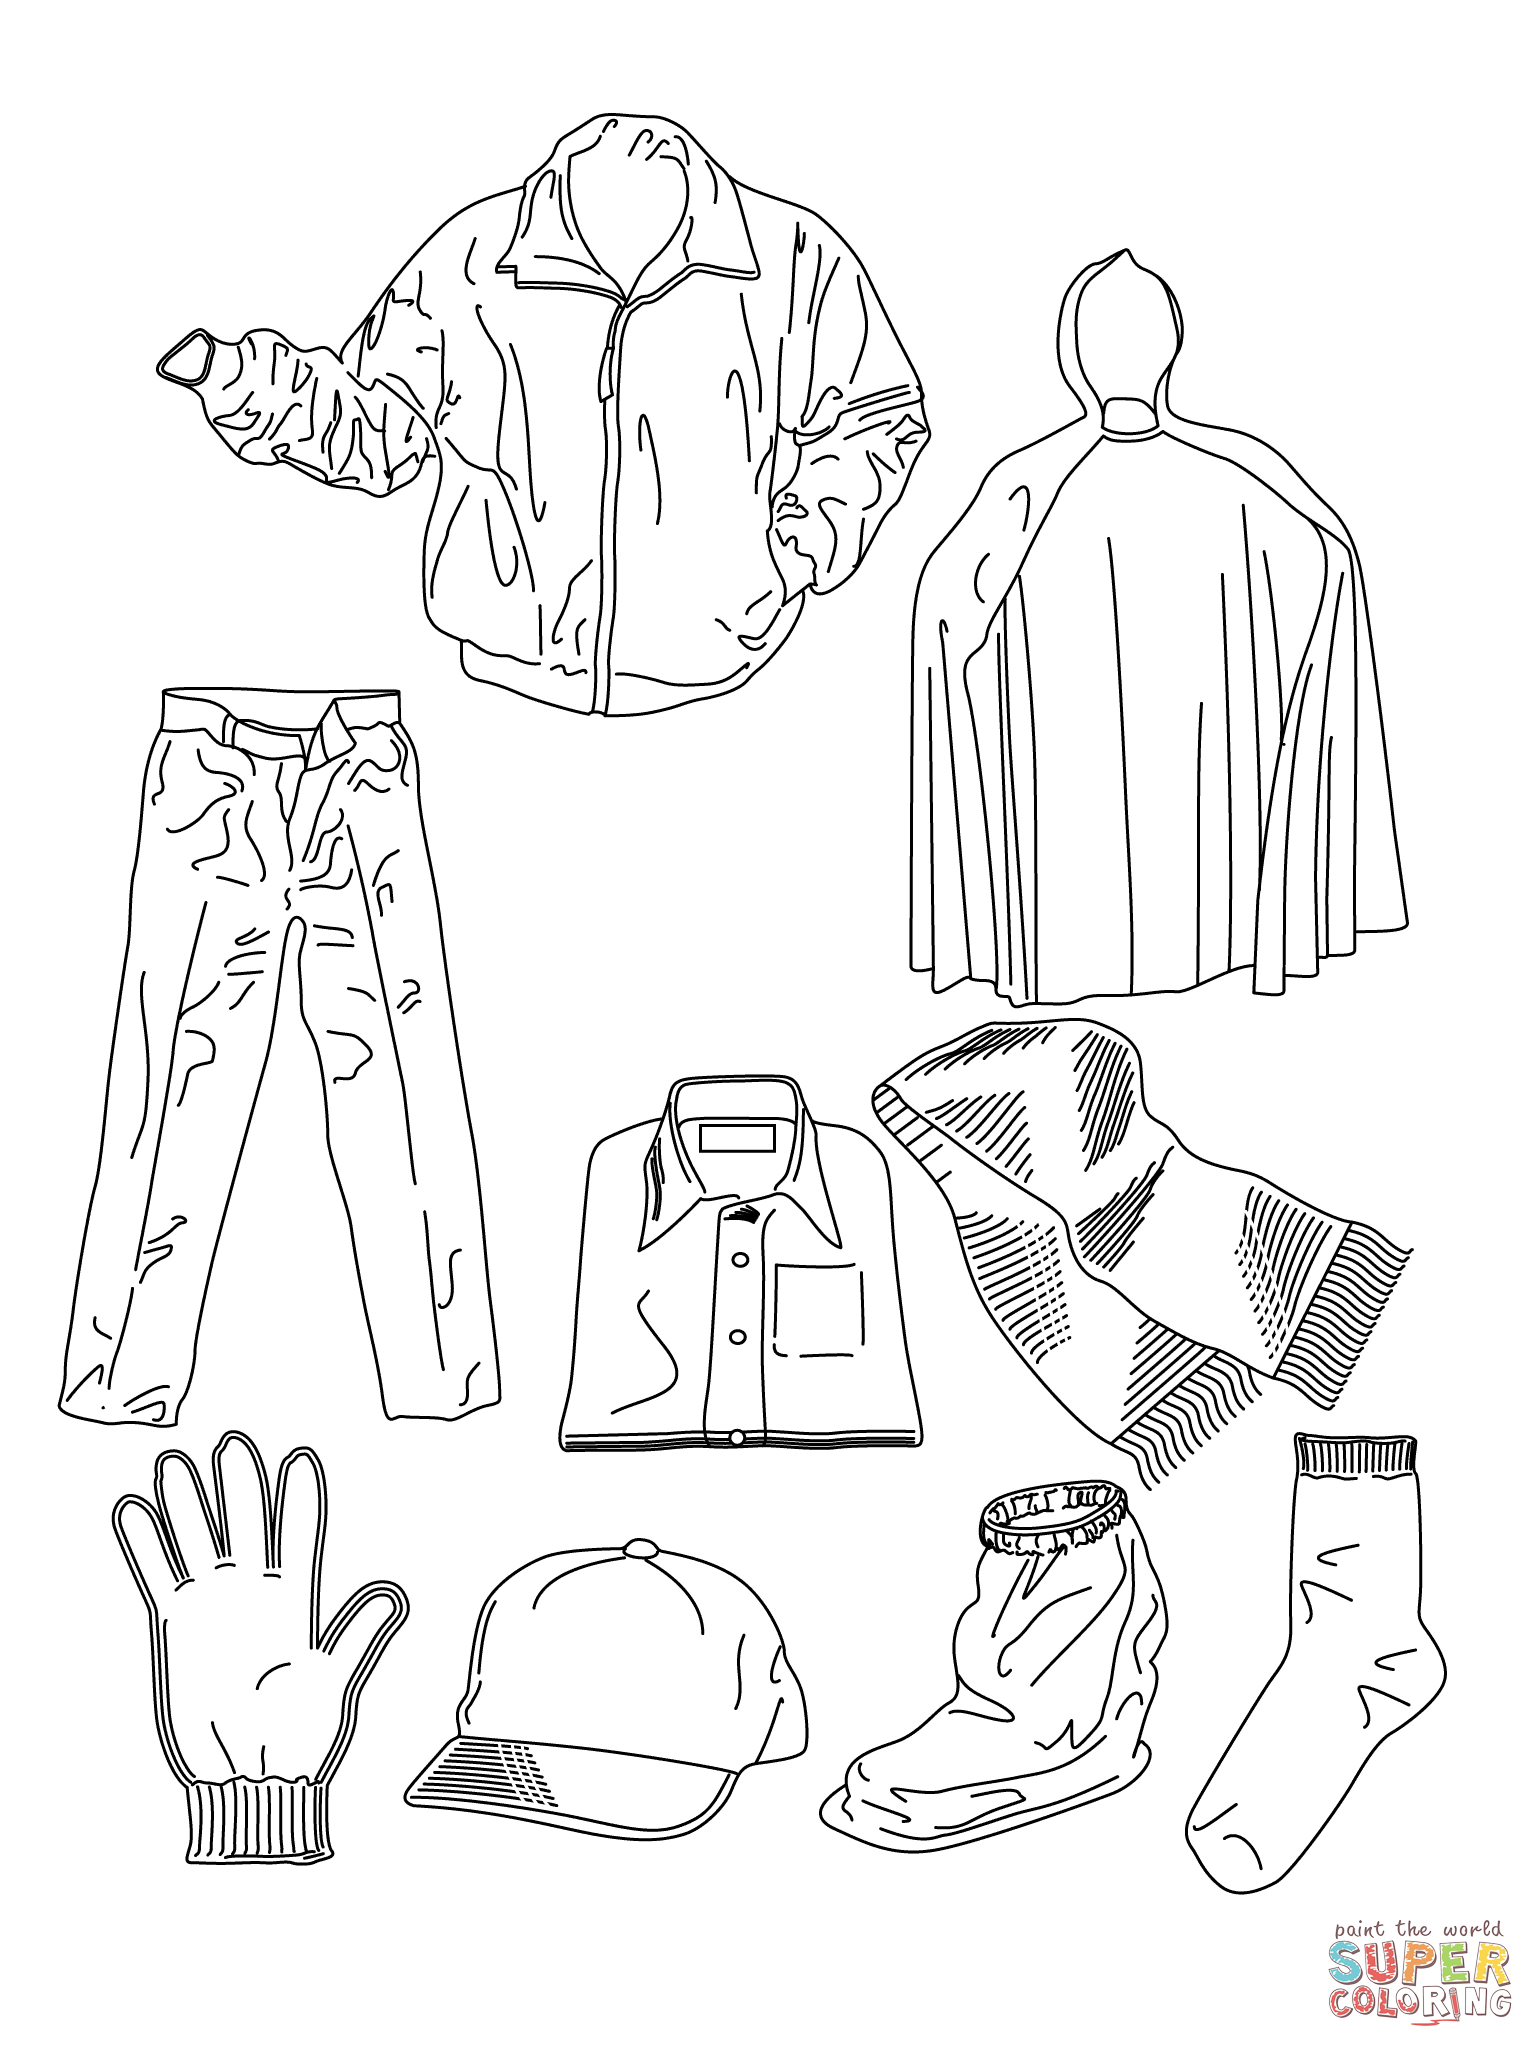 Free Coloring Pages Download Various Clothes Page Printable Of Clothing